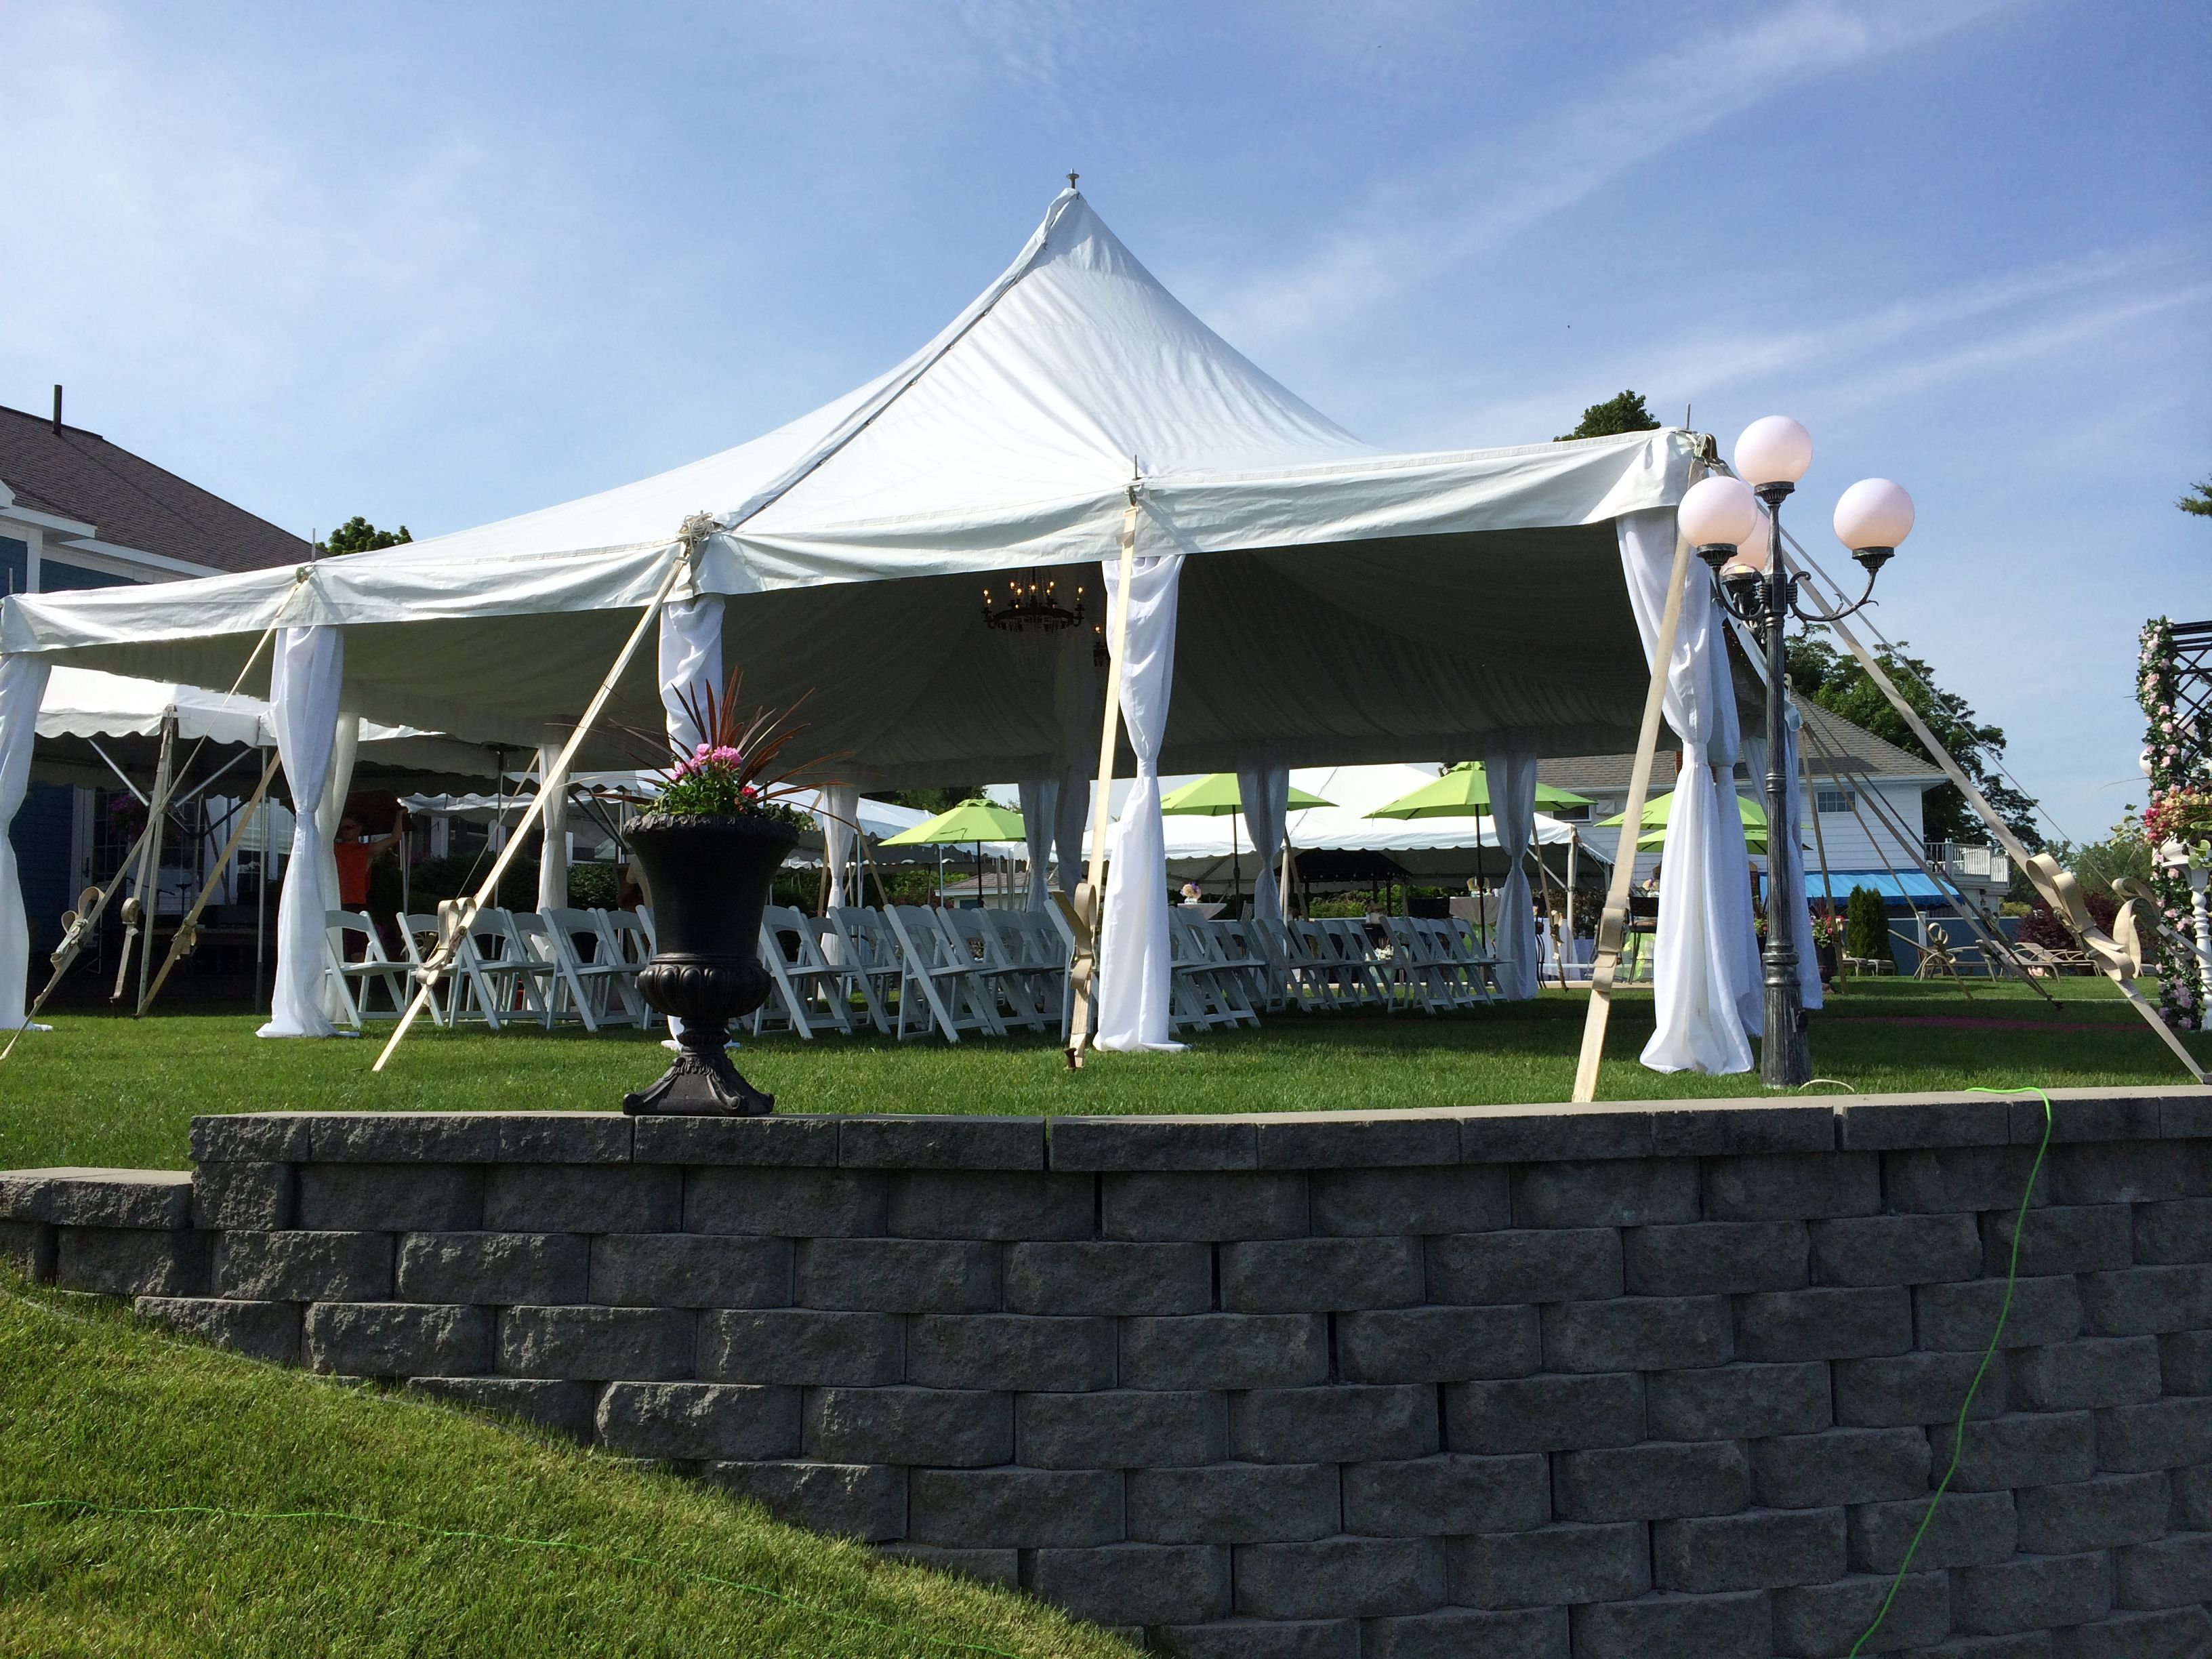 Fostersu0027 Tent and Canopy Rentals - Tents - Canopy Tents Evolution Tents Genesis Tents and Frame Tents & Pin by Fostersu0027 Tent Rentals on Pole Tents | Pinterest | Canopy ...